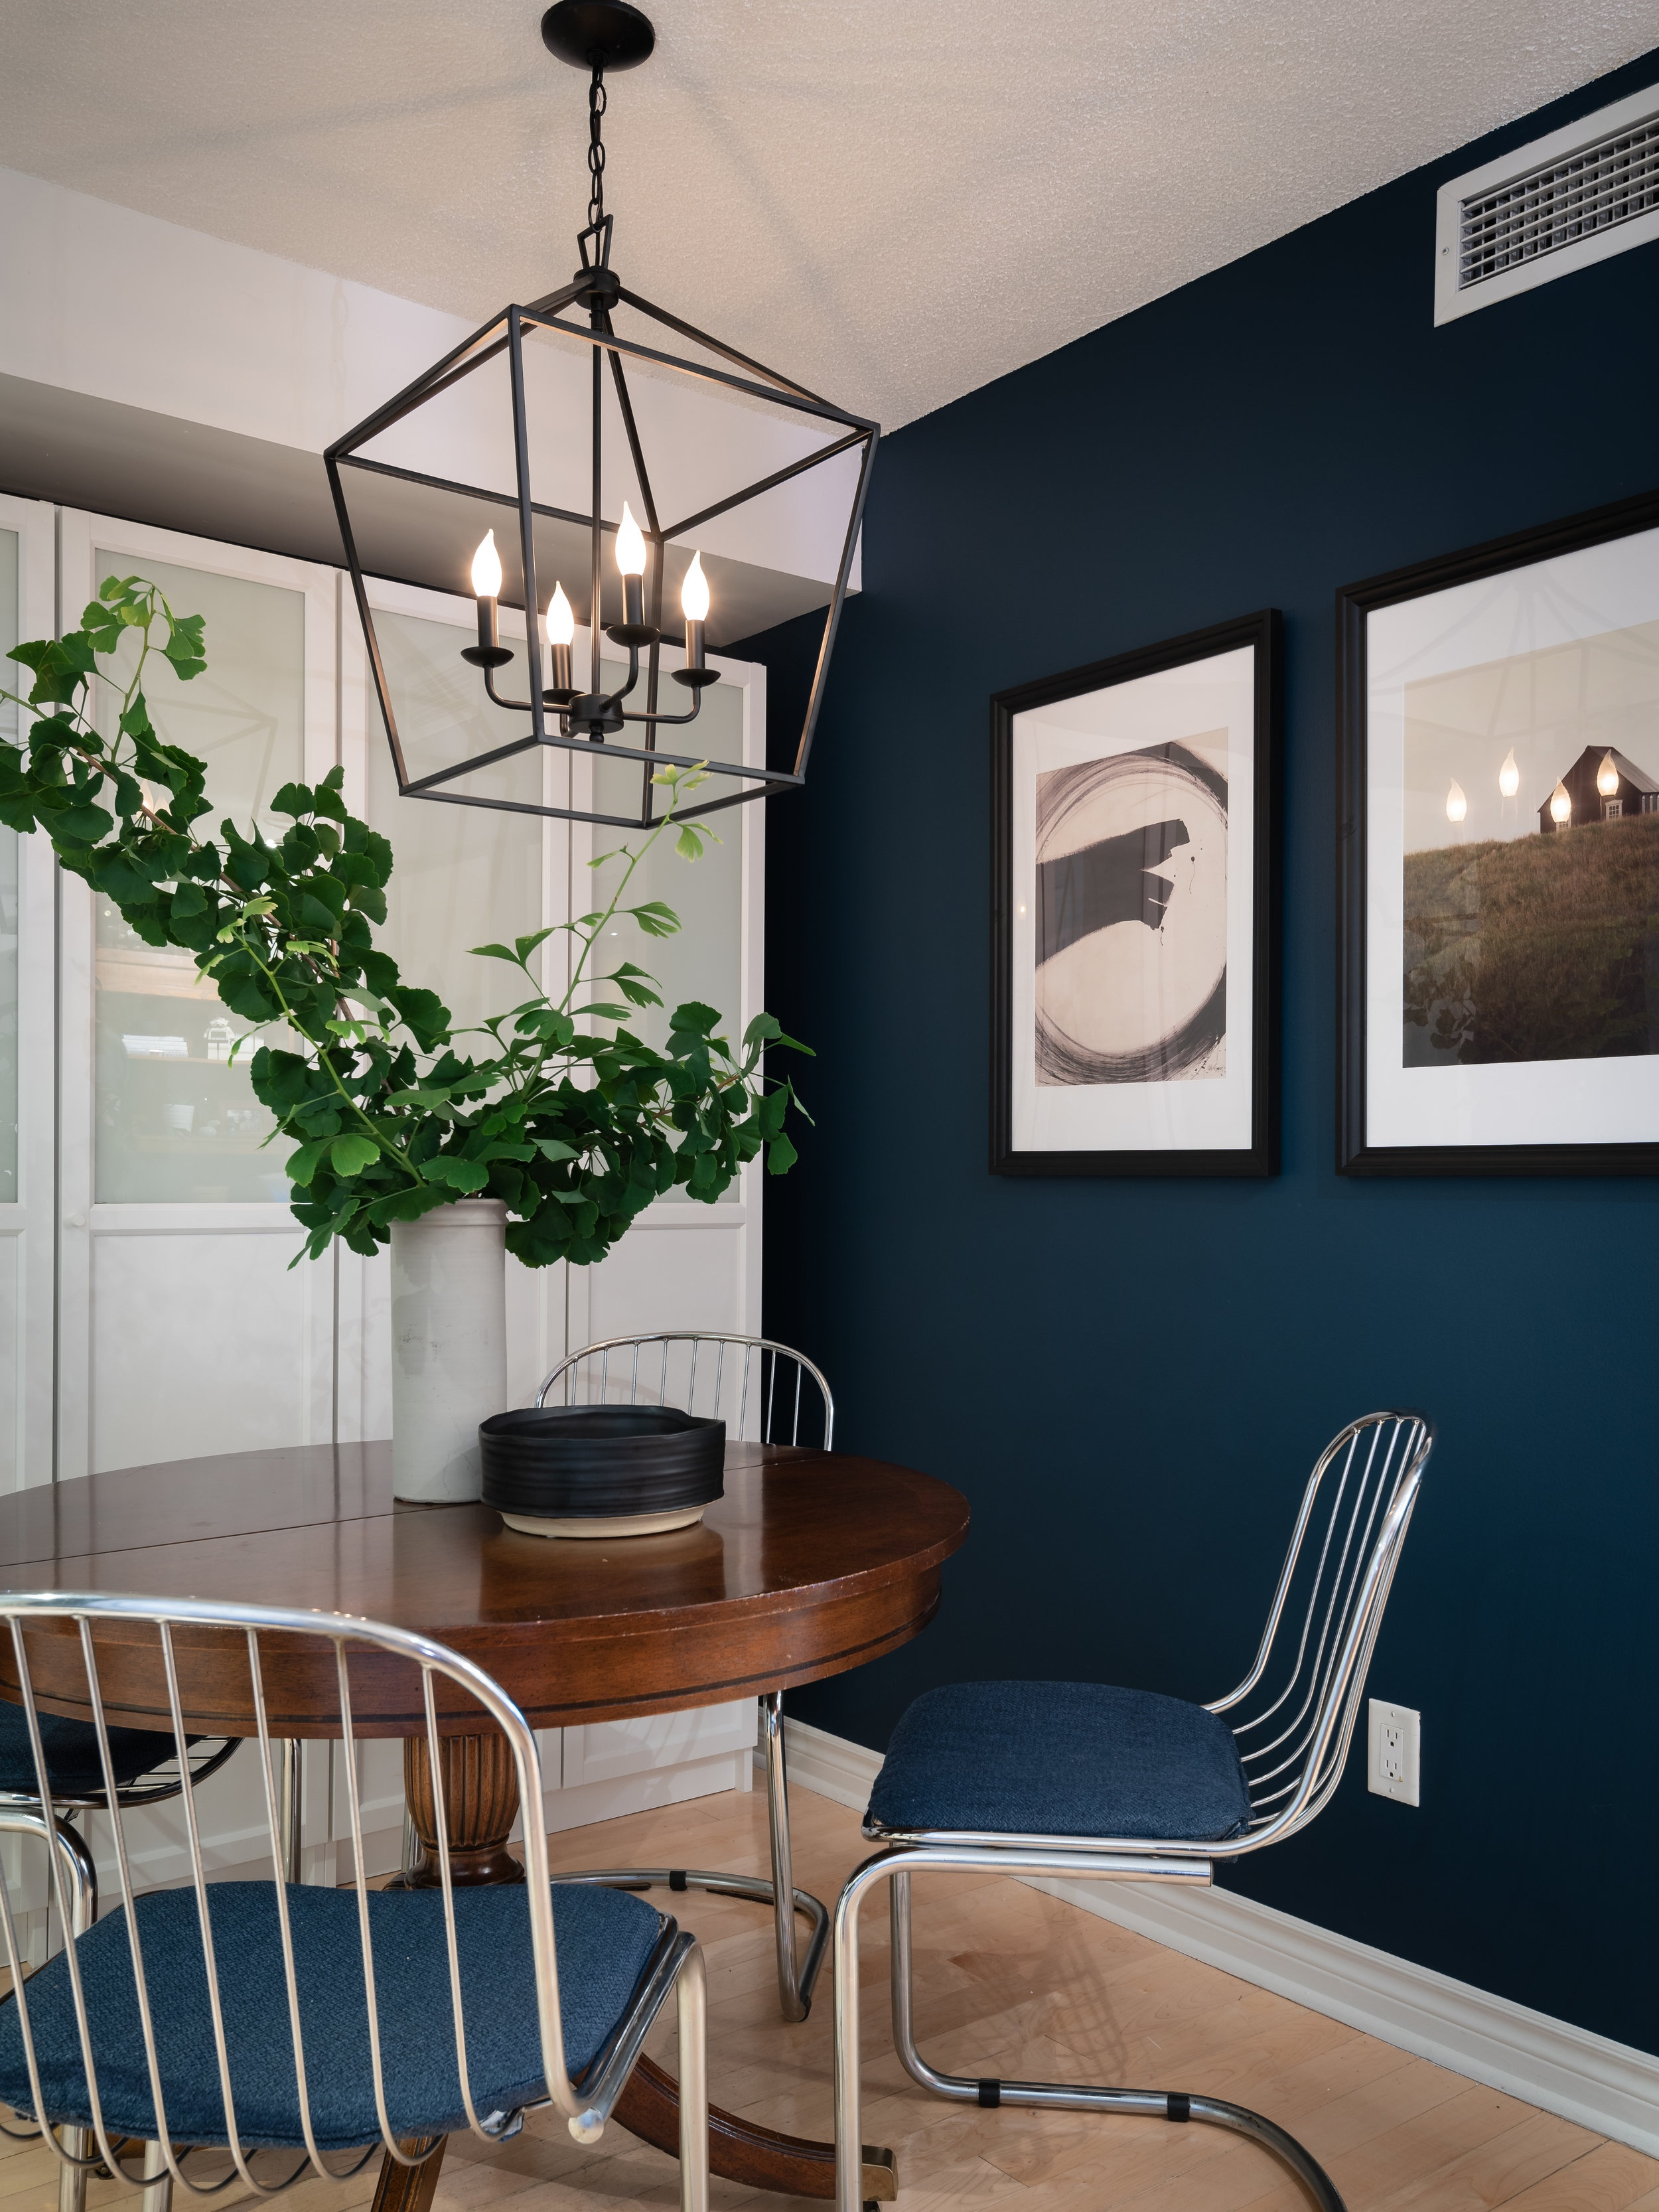 In the new dining nook there's room for a smaller round table that can be extended and four dining chairs — plenty of seating for everyday dining. Joel had the cushions on the vintage chairs reupholstered in a navy blue to nod to the new wall colour. The homeowners ended up loving the blue walls so much that they painted their bathroom with the same colour!